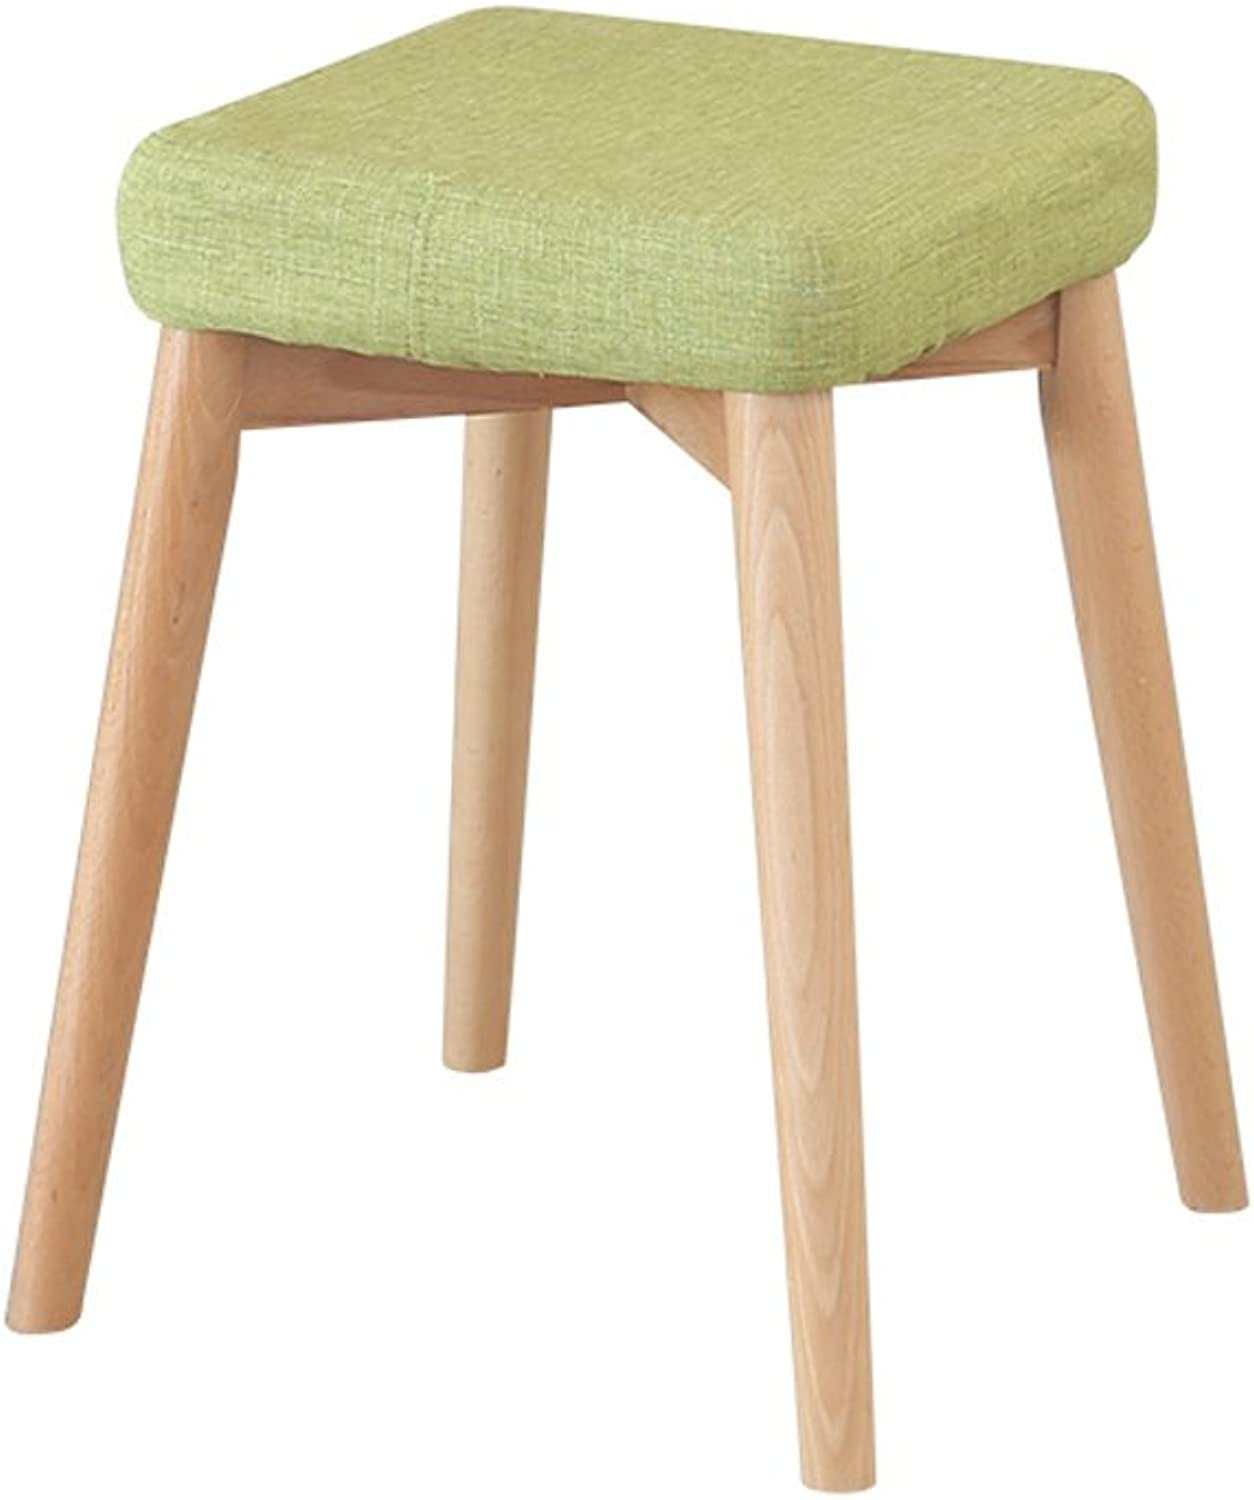 European Chair Solid Wood Dining Stool, Simple Small Stool Fashion Creative Makeup Stool Bench Fabric Stool (color   C)